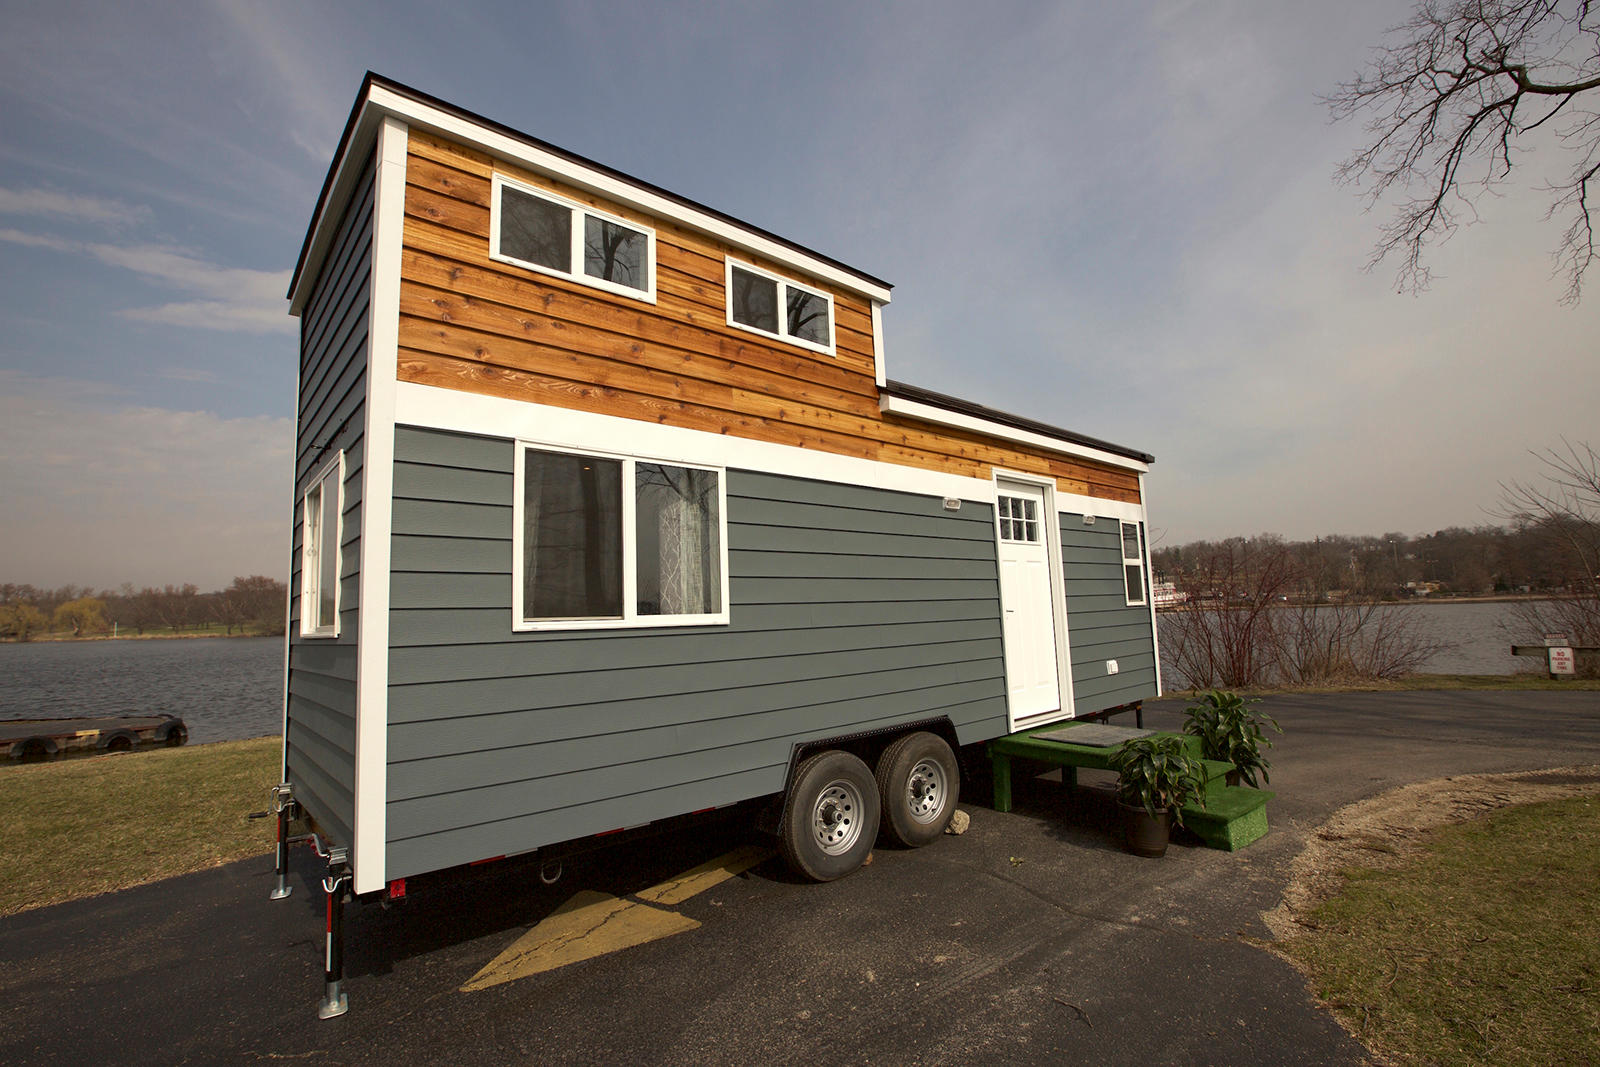 Titan tiny homes coupons near me in south elgin 8coupons for Small home builders near me